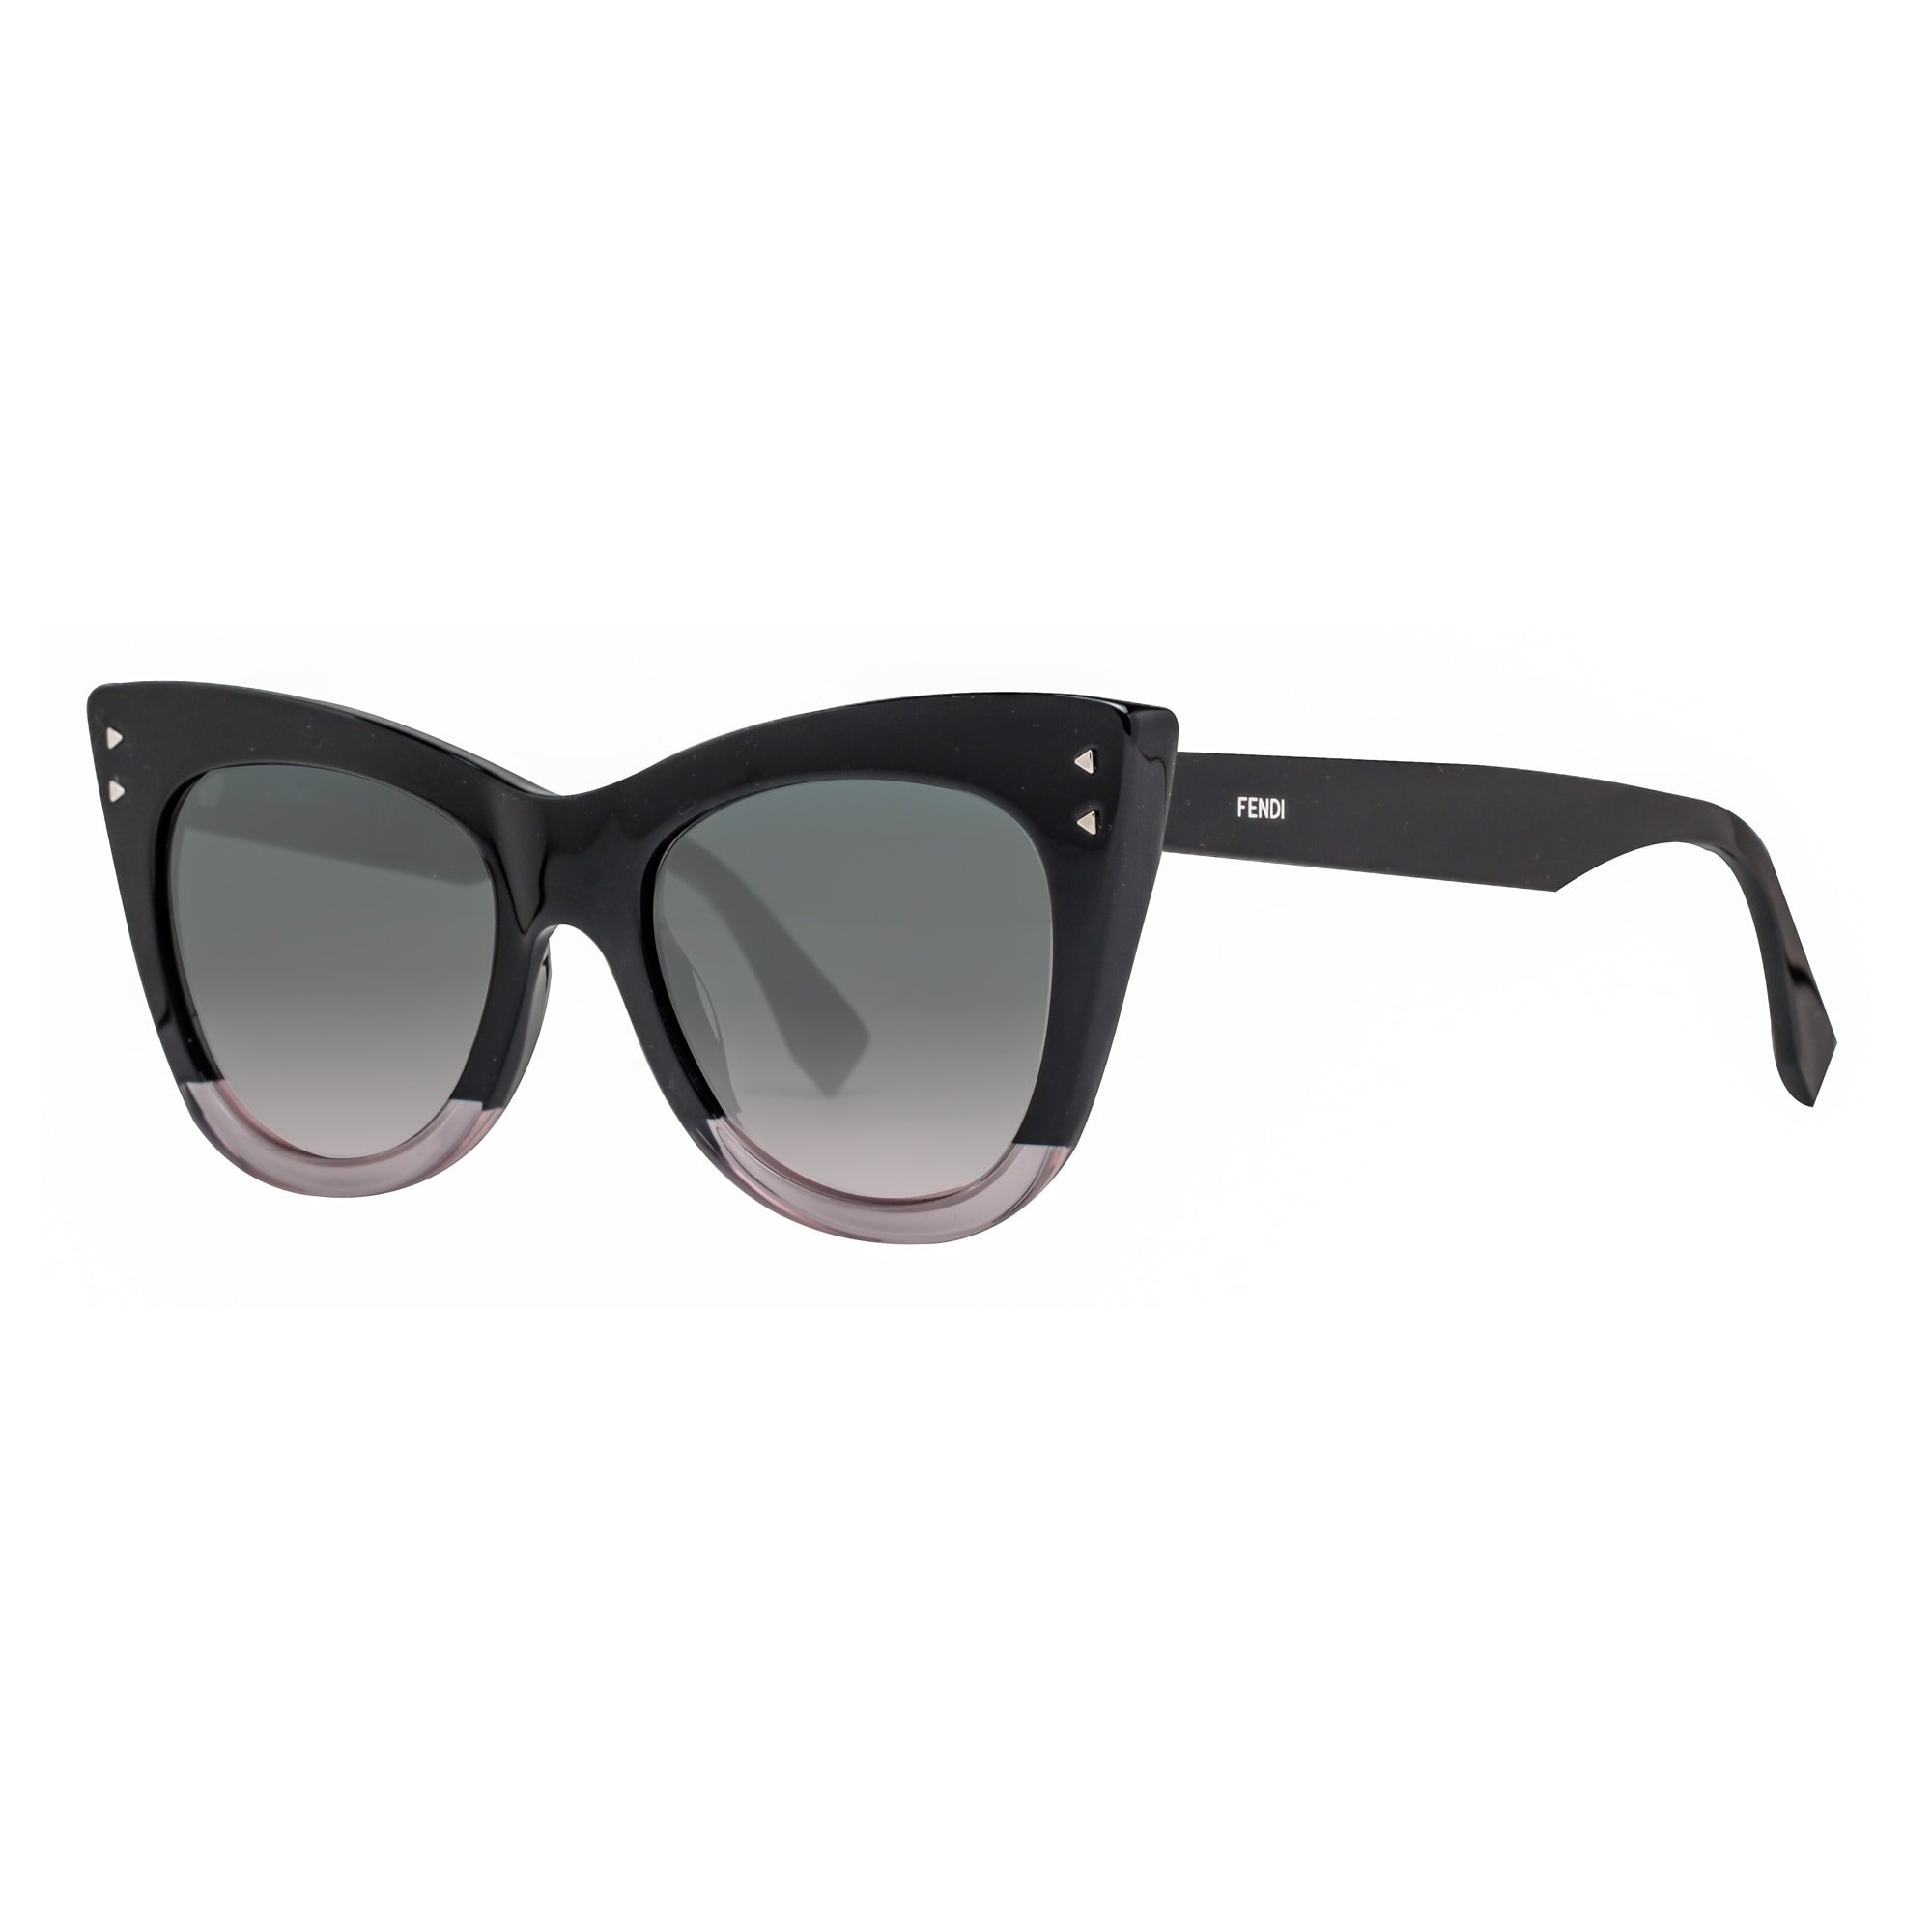 6deb57c2b445 Fendi FF 0238 S 3H2 JP Black Transparent Pink Grey Gradient Cat Eye  Sunglasses - 52mm-19mm-145mm